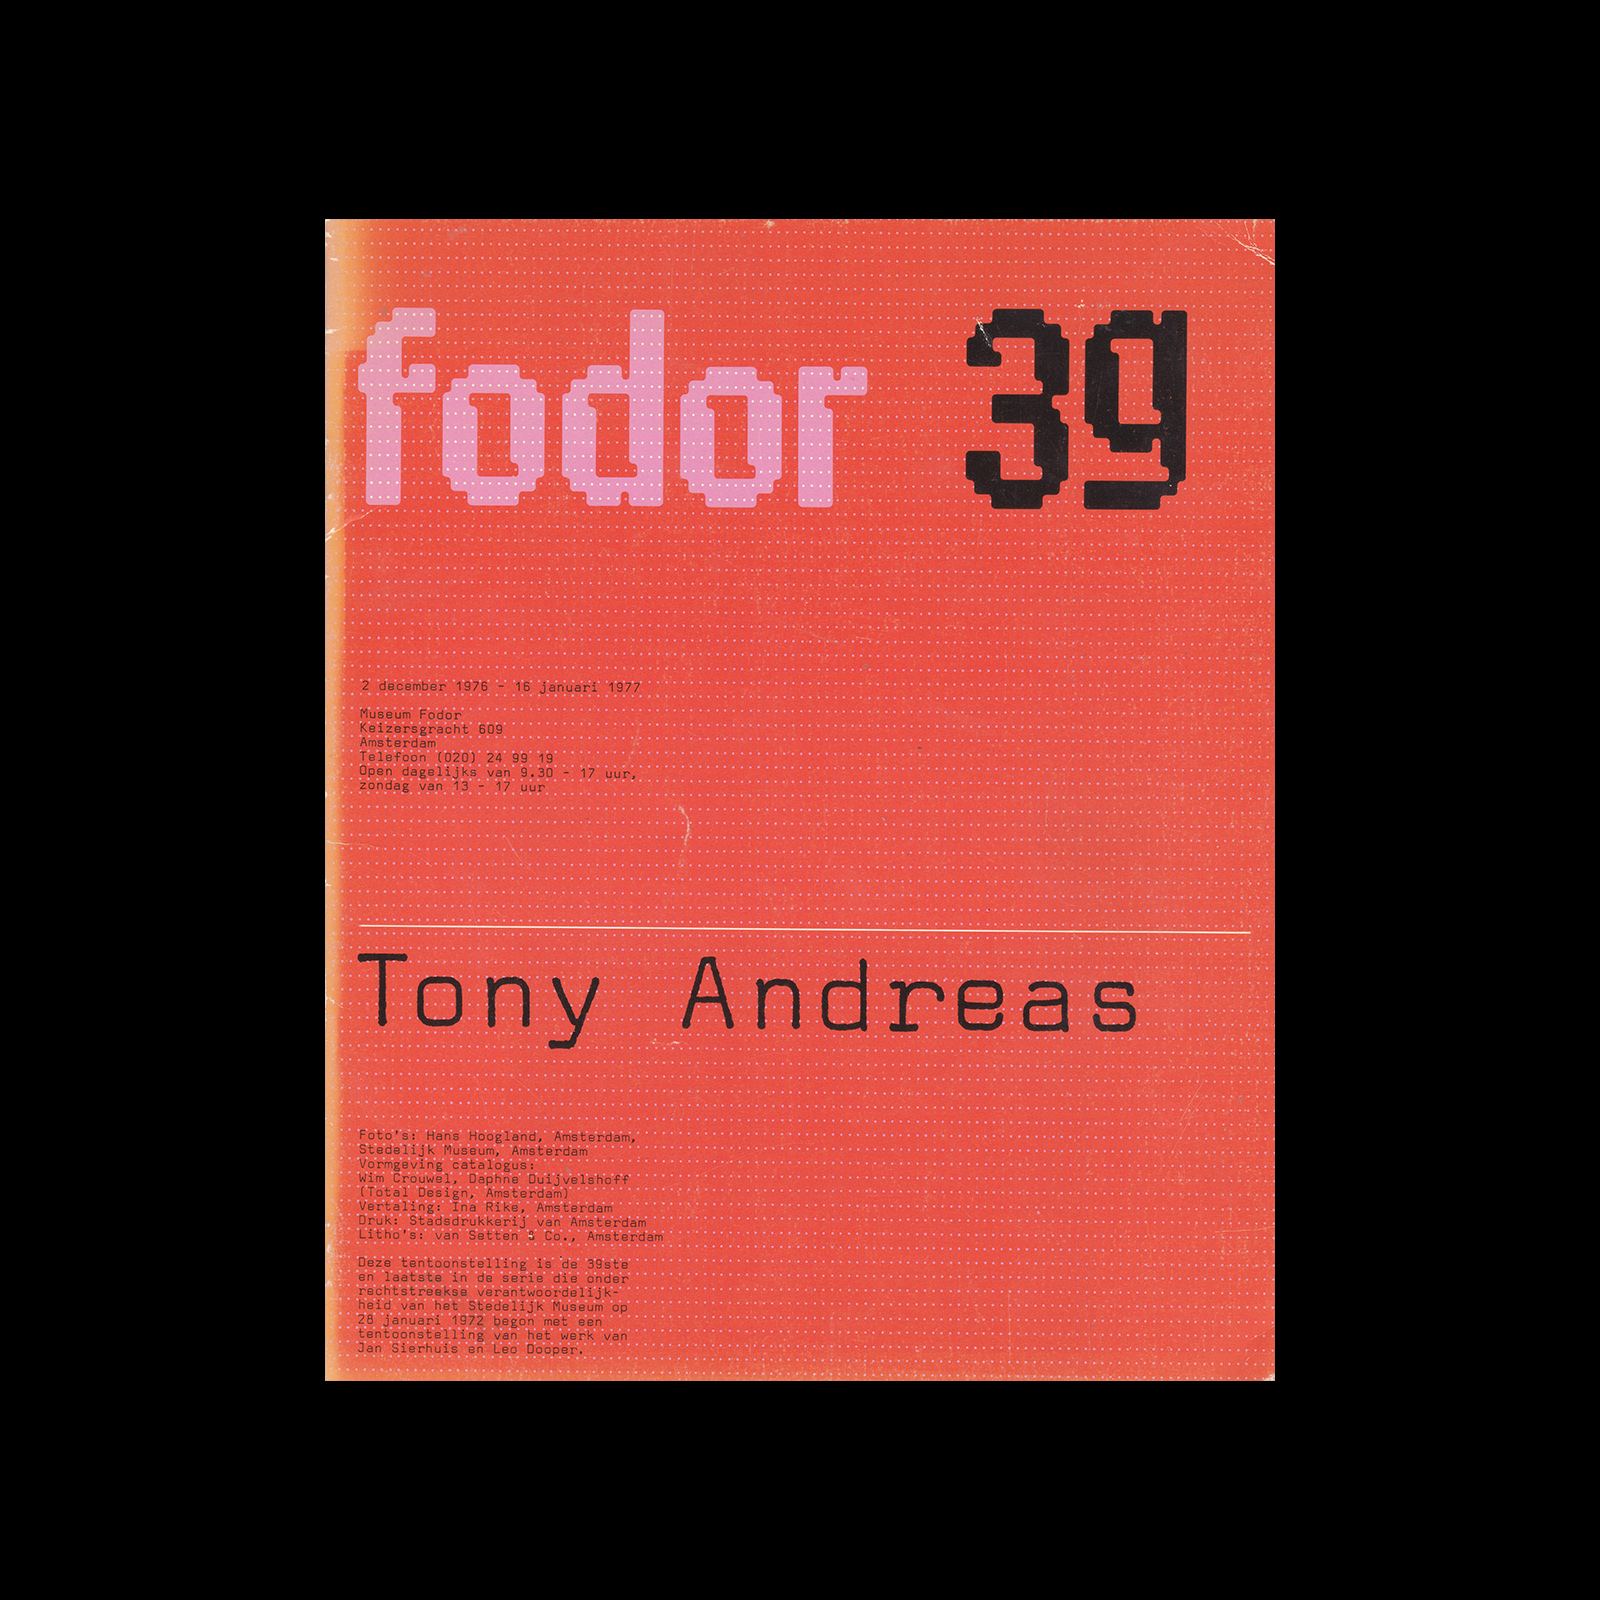 Fodor 39, 1977 - Tony Andreas. Designed by Wim Crouwel and Daphne Duijvelshoff (Total Design)